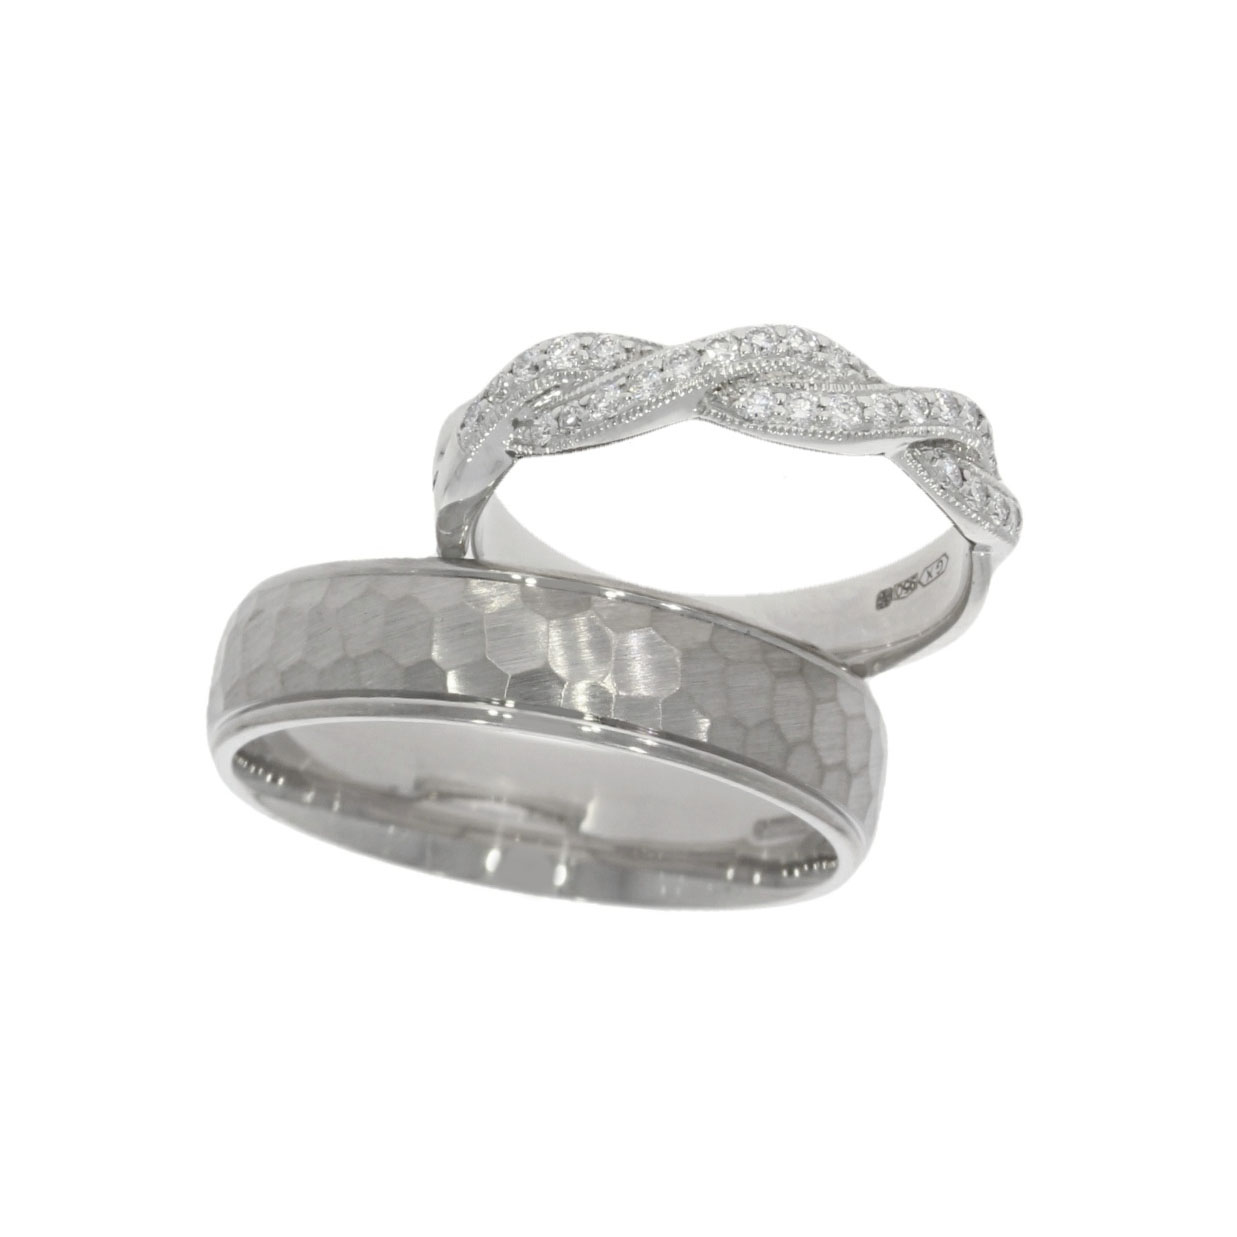 A bespoke wedding ring set in platinum and palladium each a different style